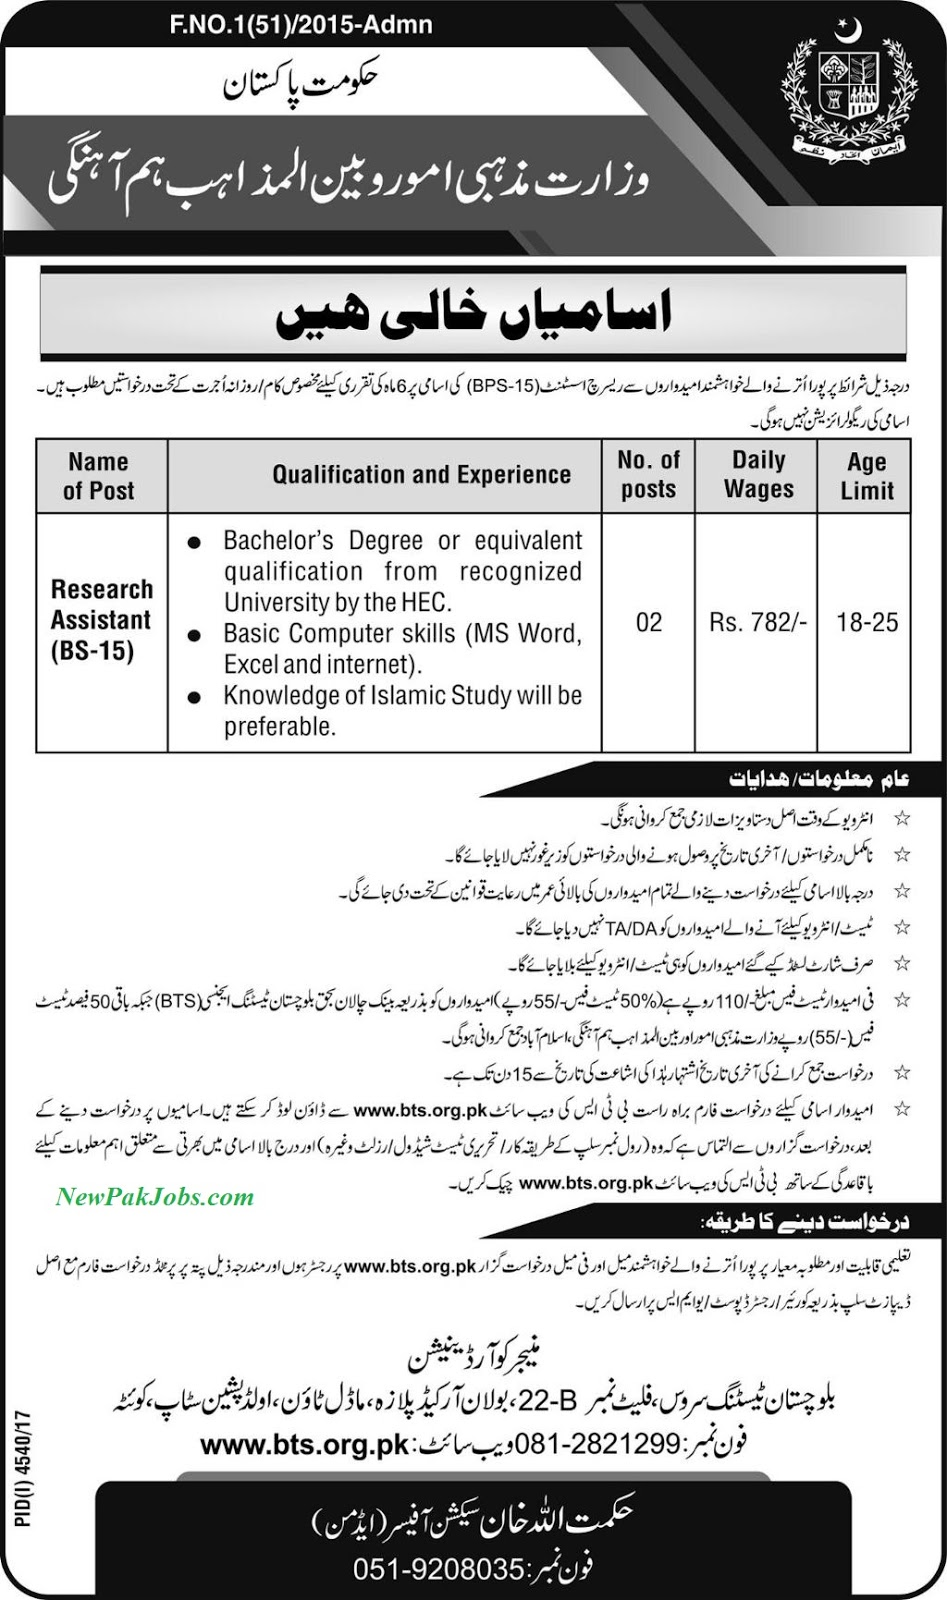 Latest New BTS Jobs 2018 in Ministry Of Religious Affairs Govt Of Pakistan